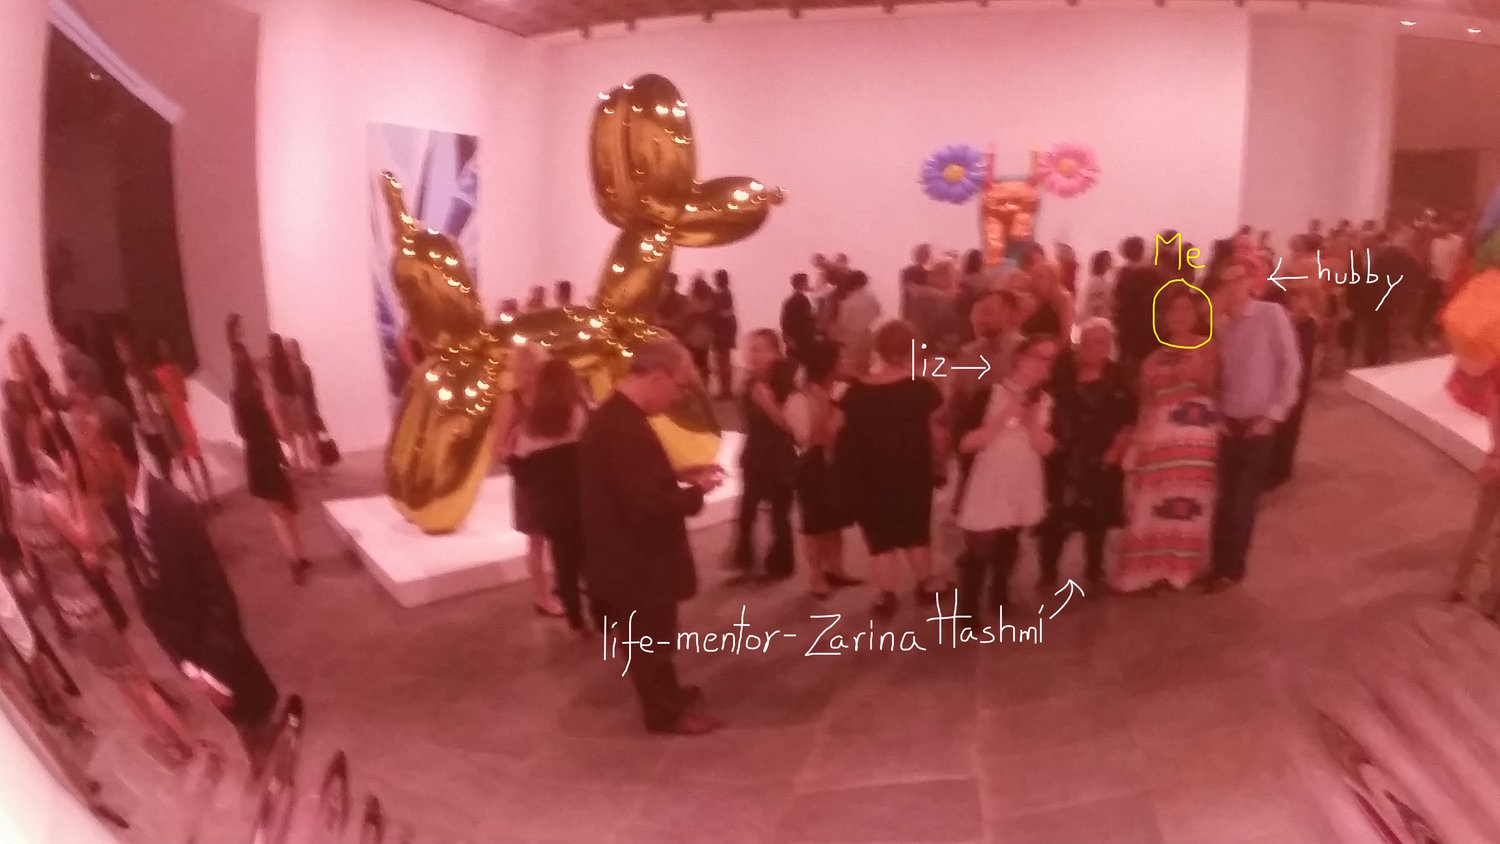 Reflection - Selfie of me and my posse in a shiny Jeff Koons sculpture.